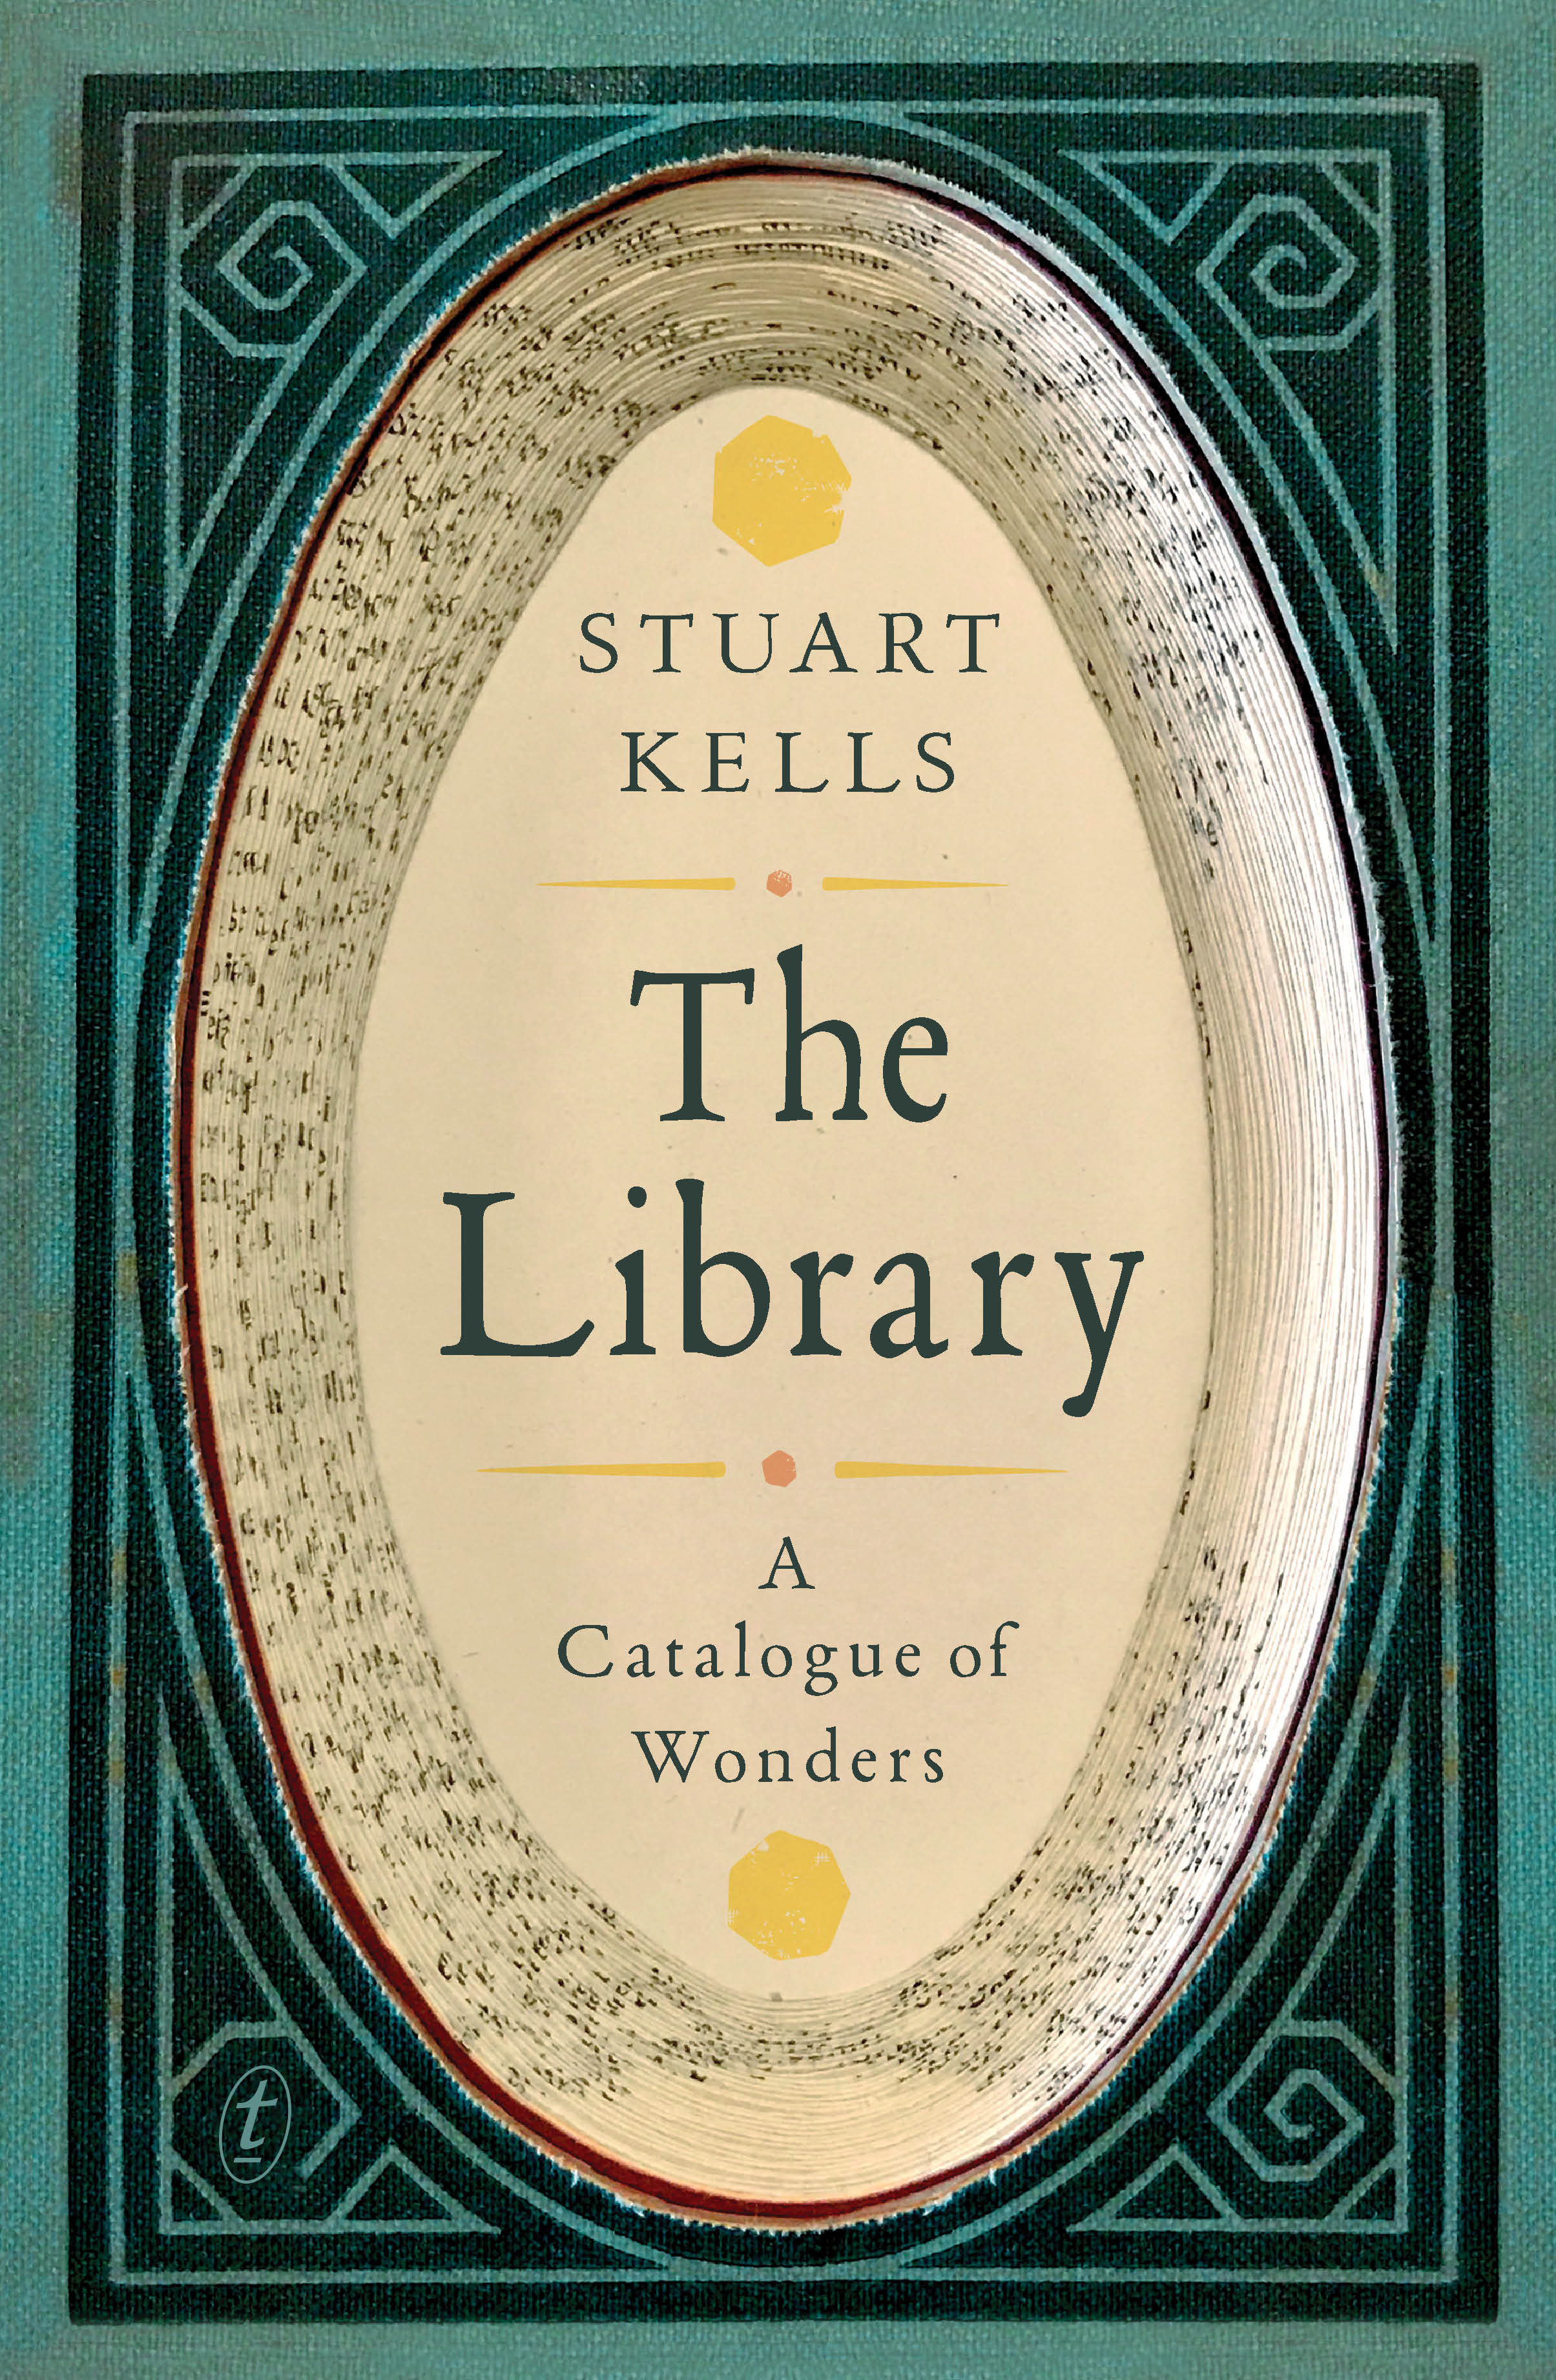 The Library A Catalogue of Wonders